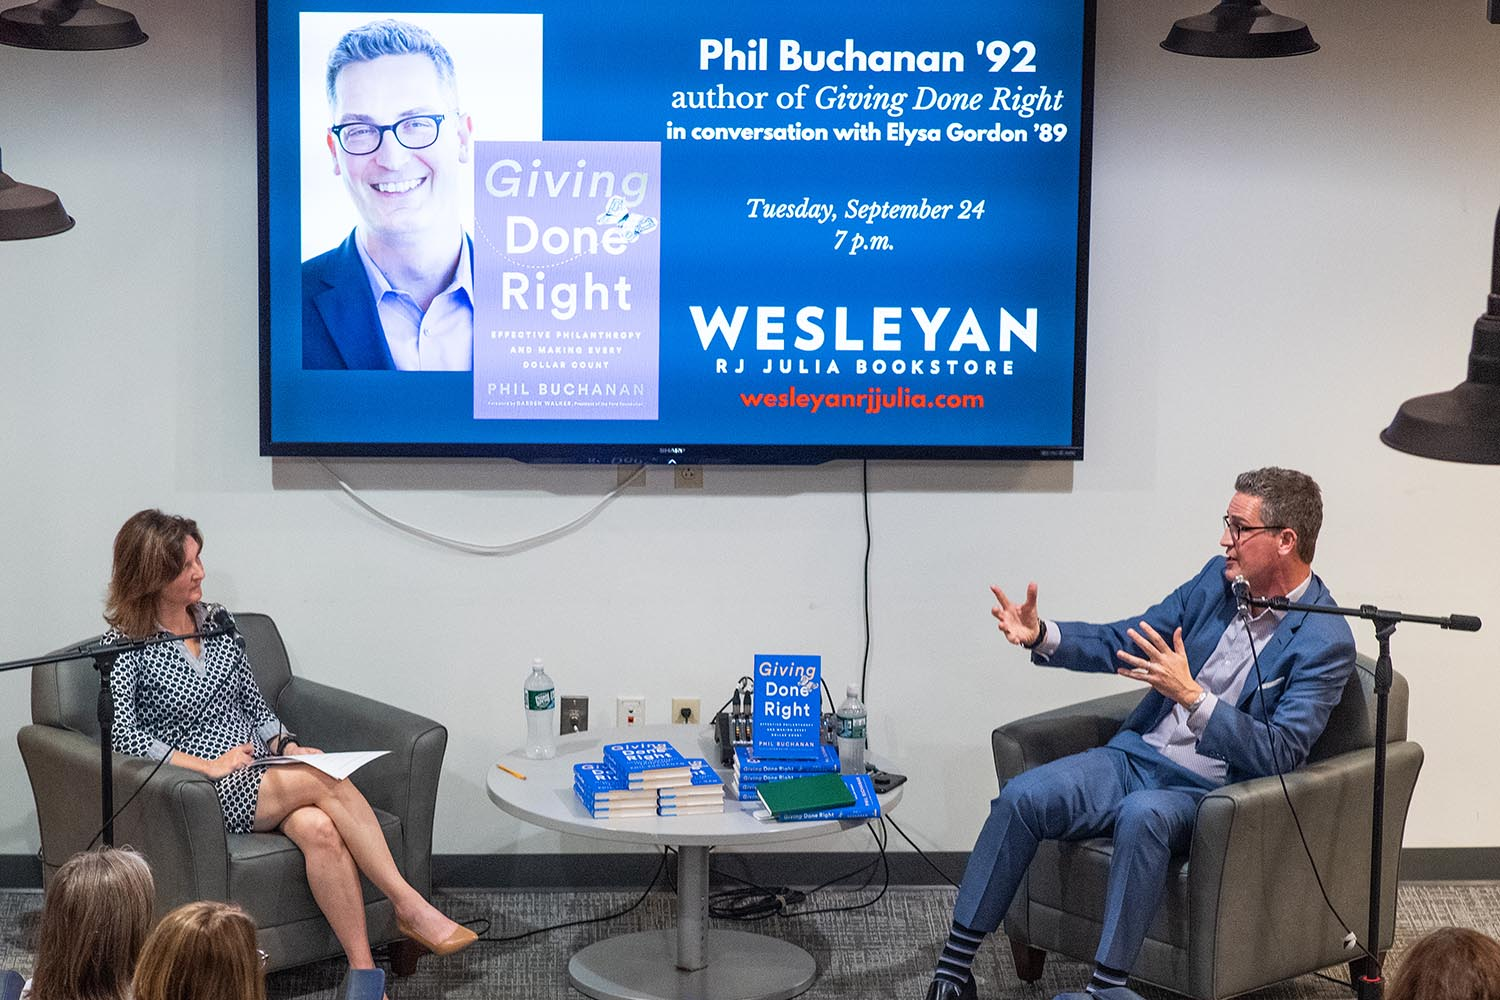 On Sept. 24, Phil Buchanan '92 and Elysa Gordon '89 discussed Buchanan's new book, Giving Done Right: Effective Philanthropy and Making Every Dollar Count at Wesleyan's RJ Julia Bookstore.